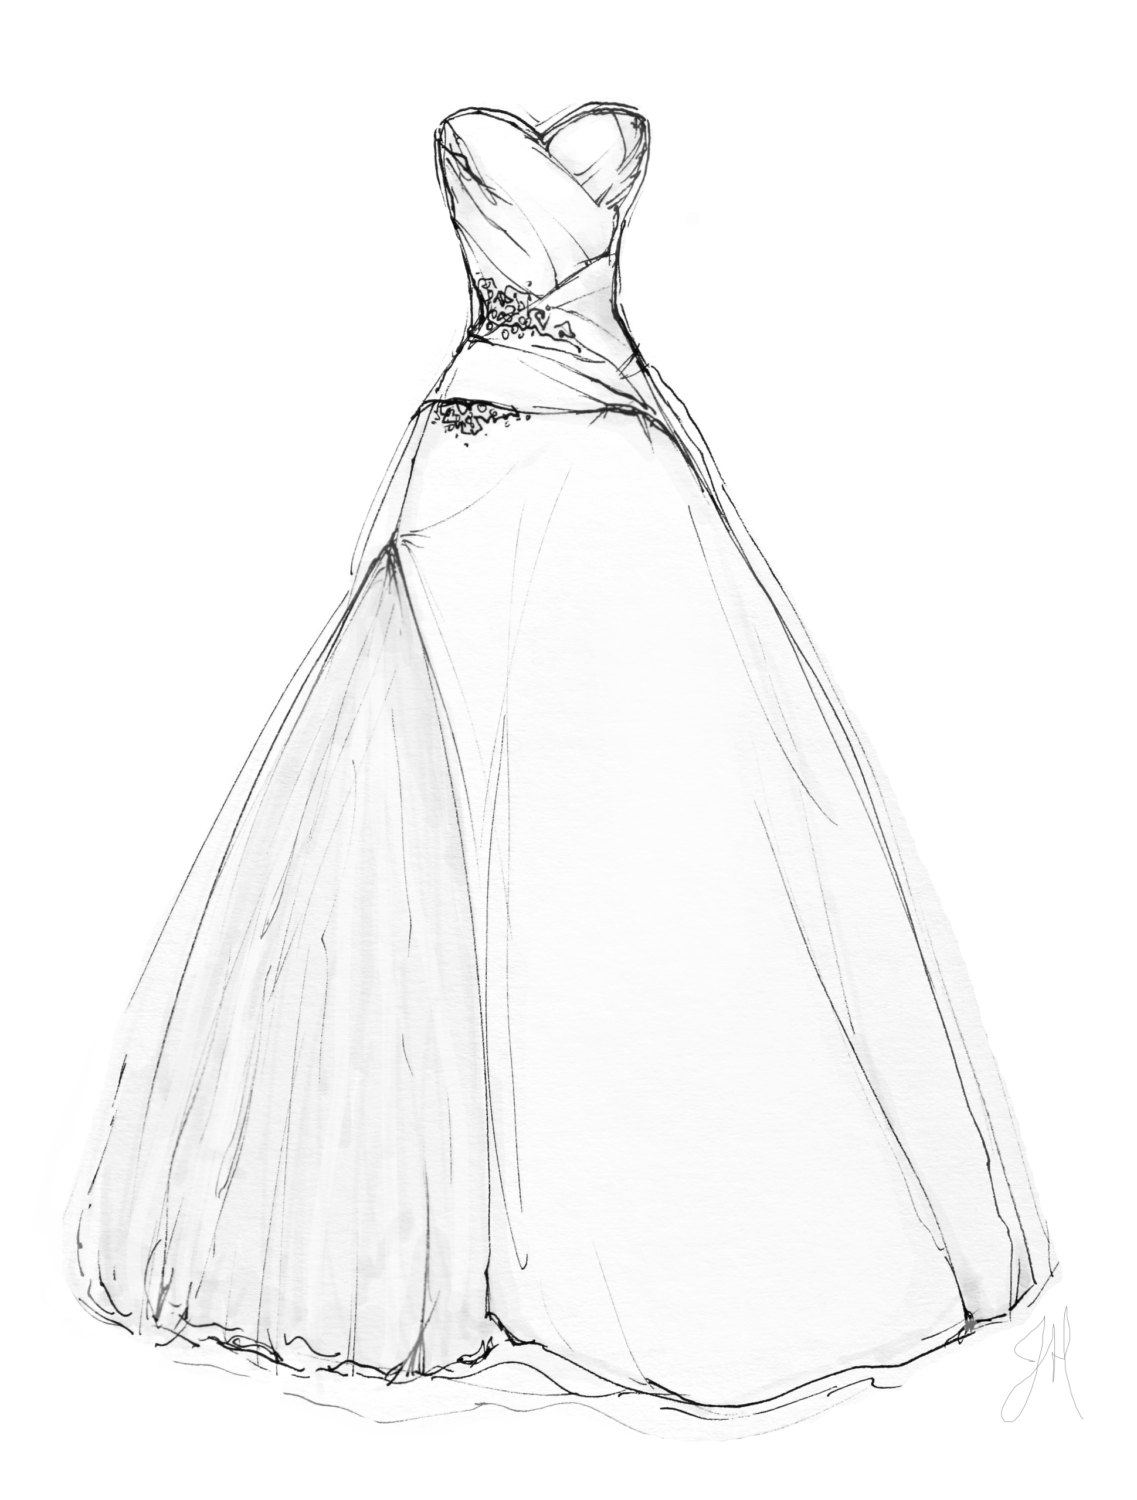 1137x1500 Wedding Dress Designs Drawings